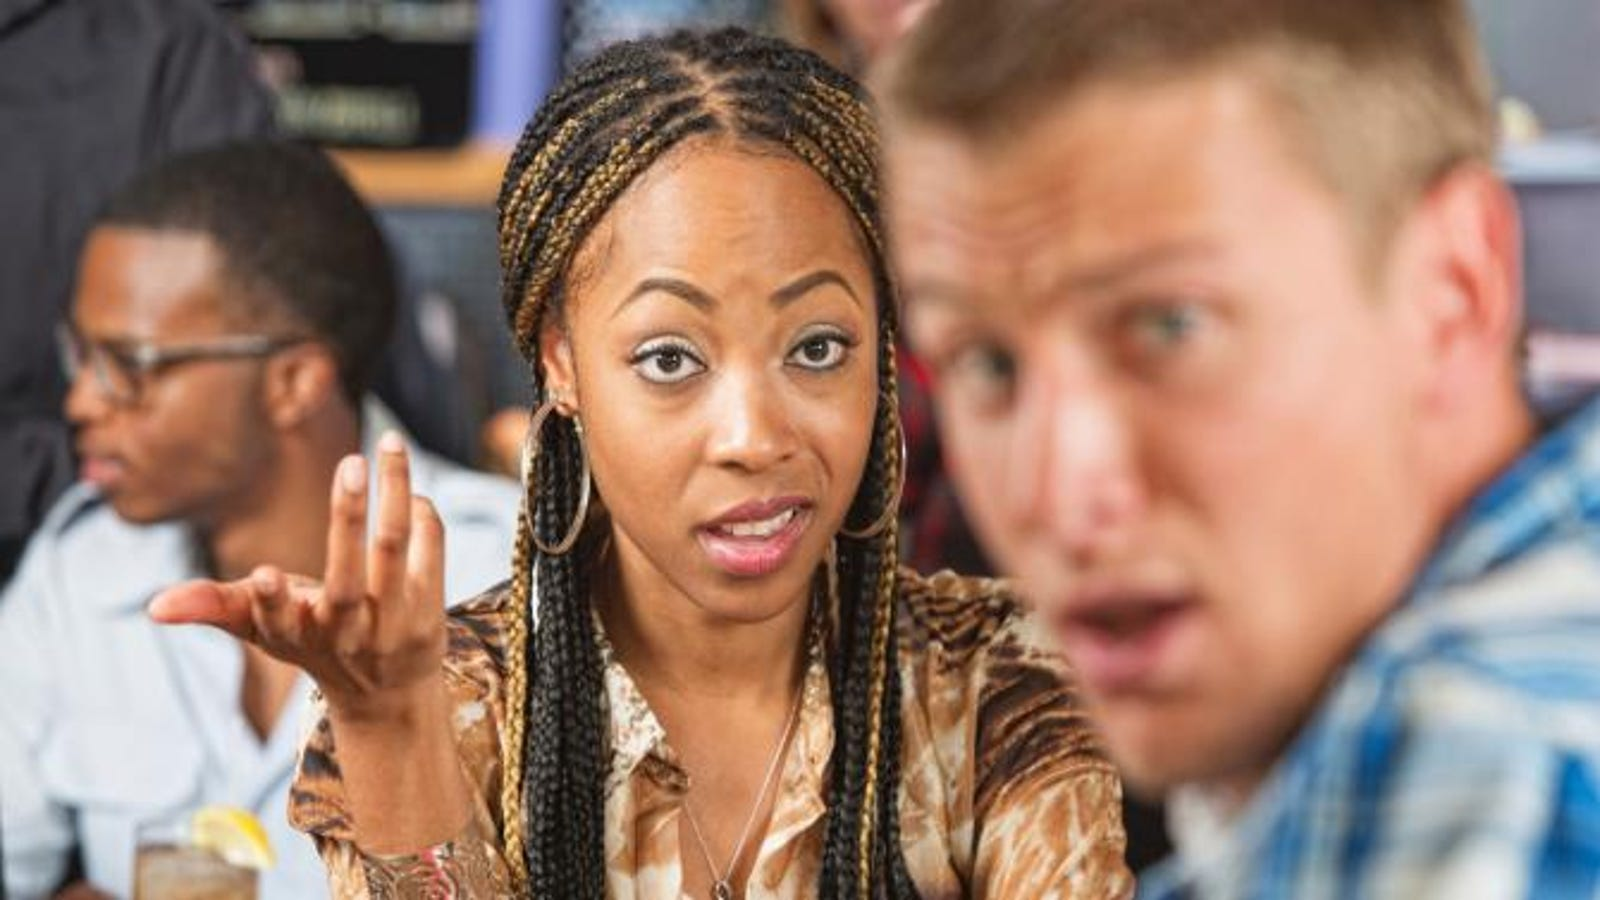 5 Signs You're About to Be Racially Fetishized